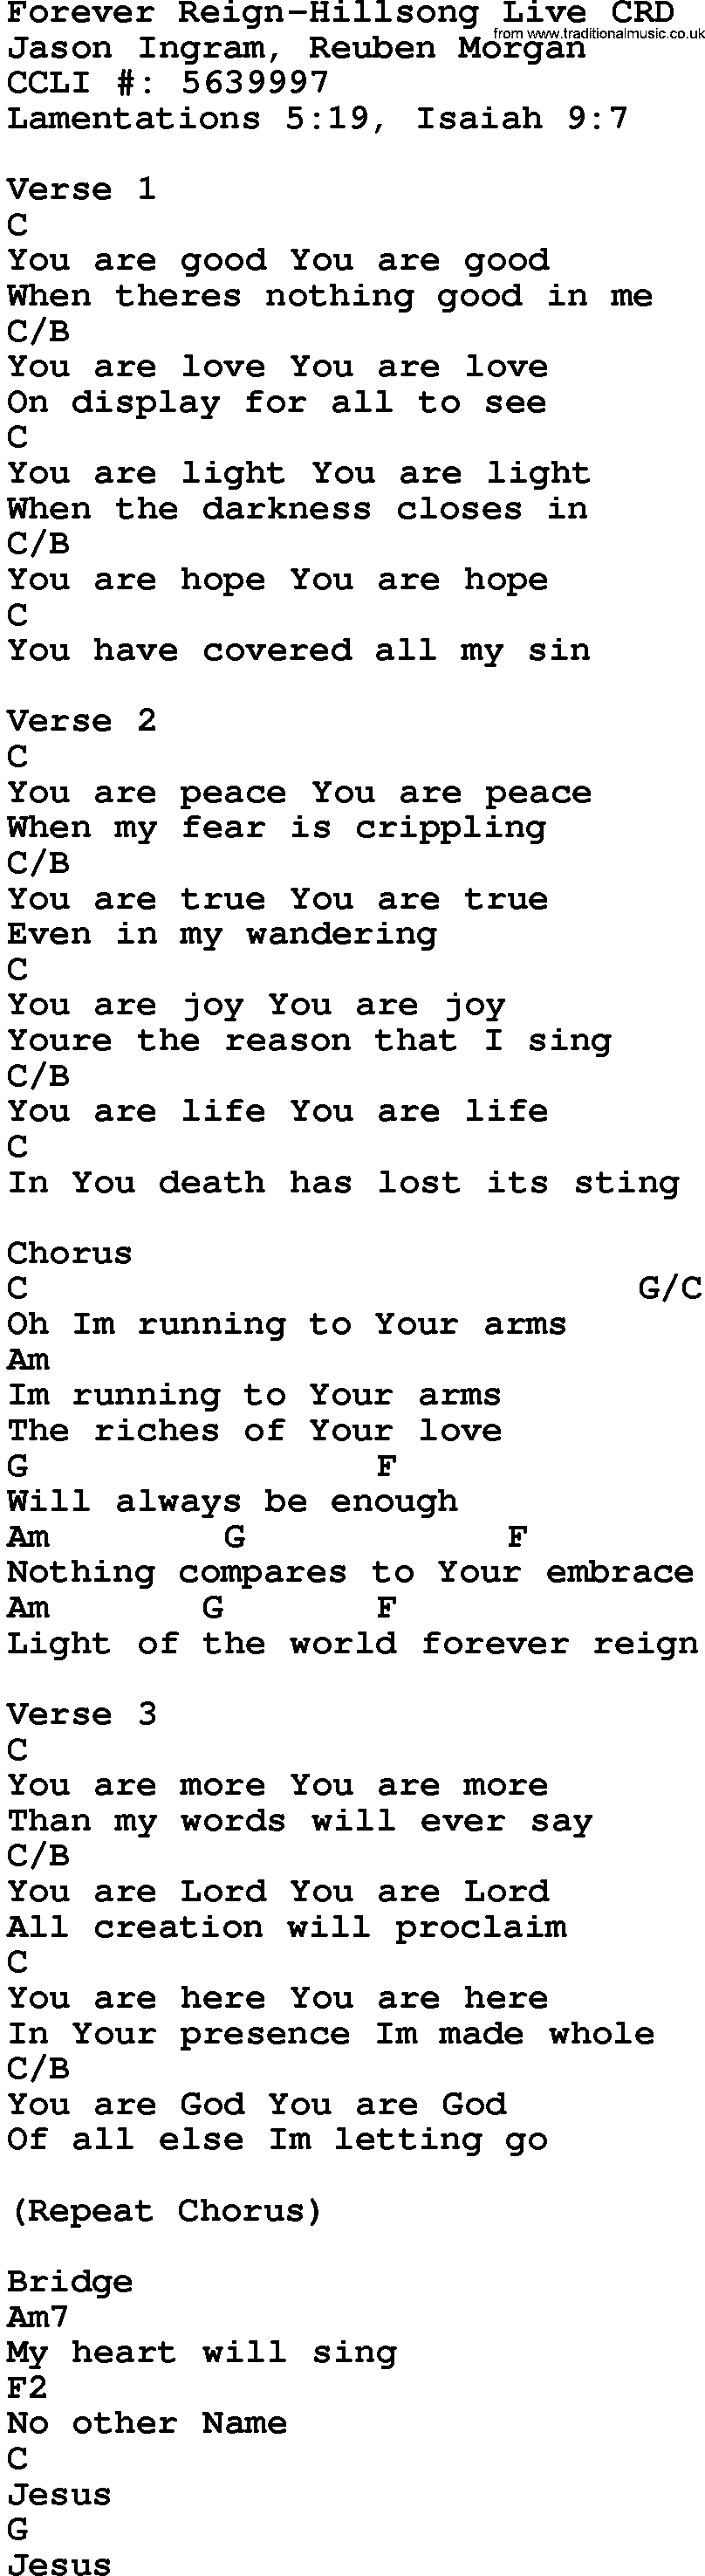 Christian music chords and lyrics download these lyrics and gospel song forever reign hillsong live lyrics and chords hexwebz Gallery